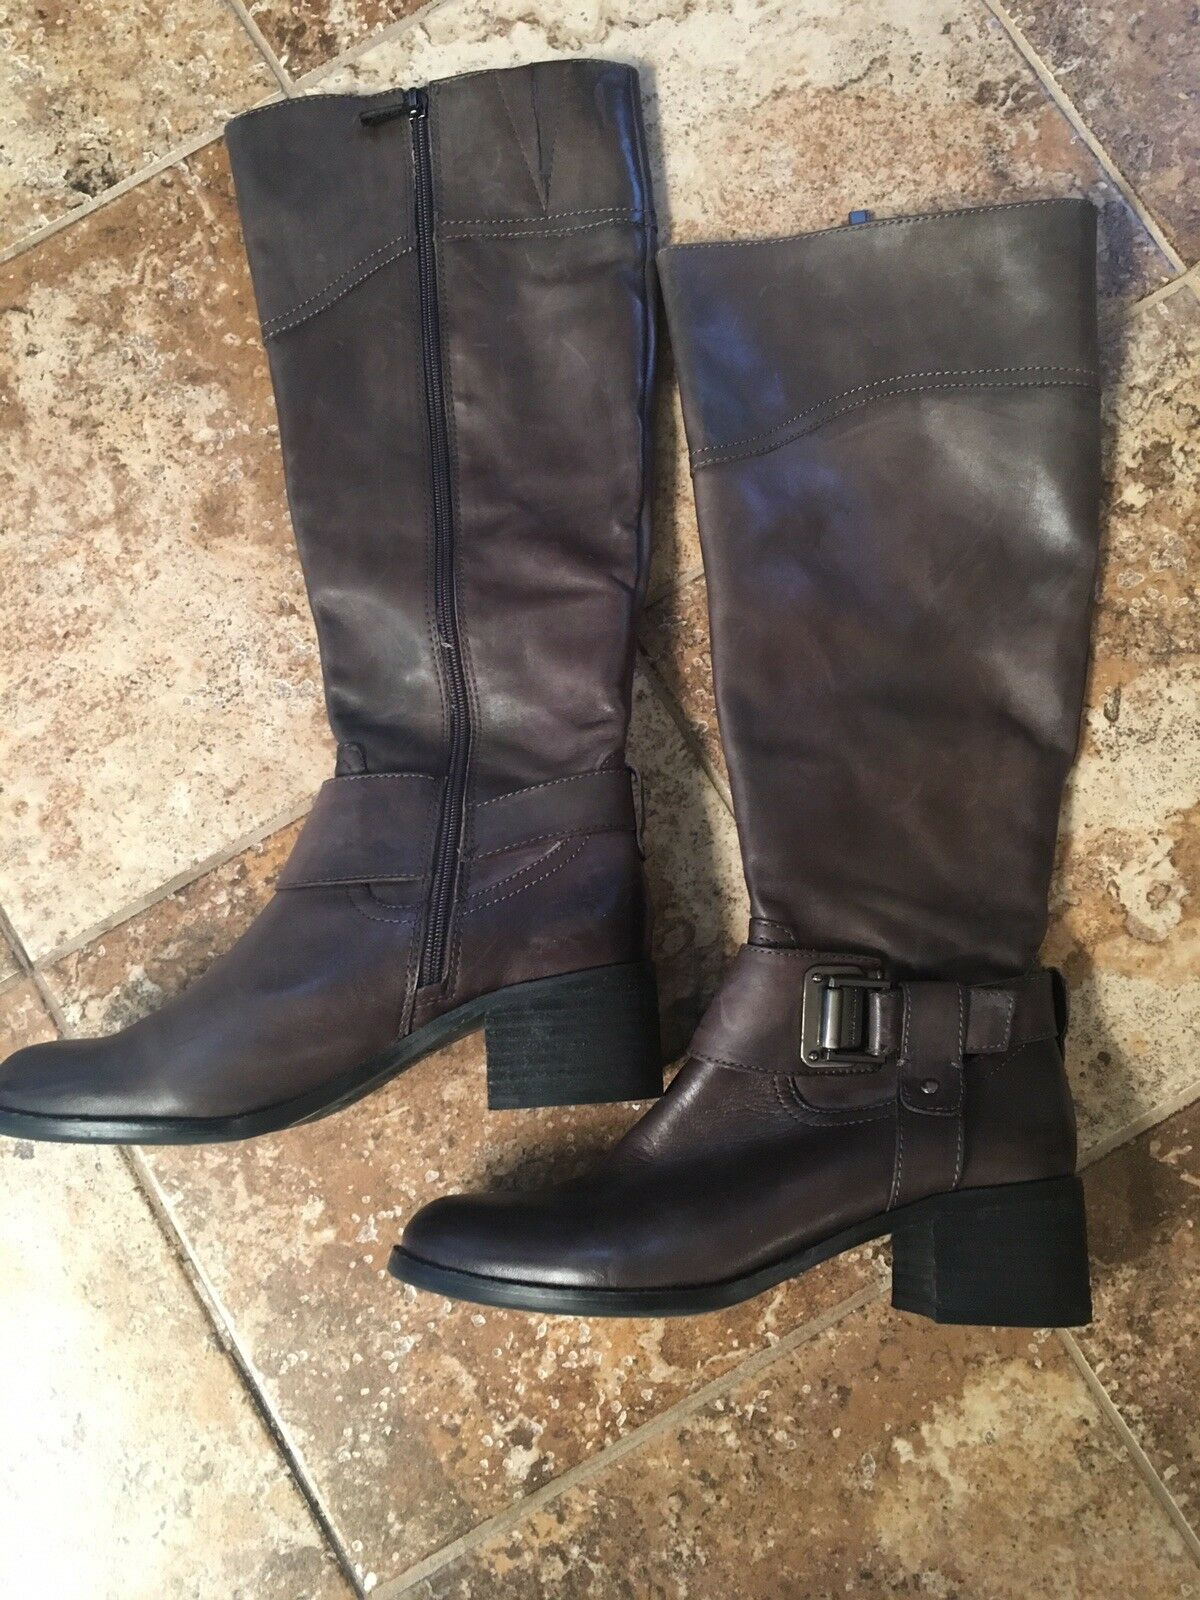 Vince Camuto brown Leather Knee High Boots Womens Size 9